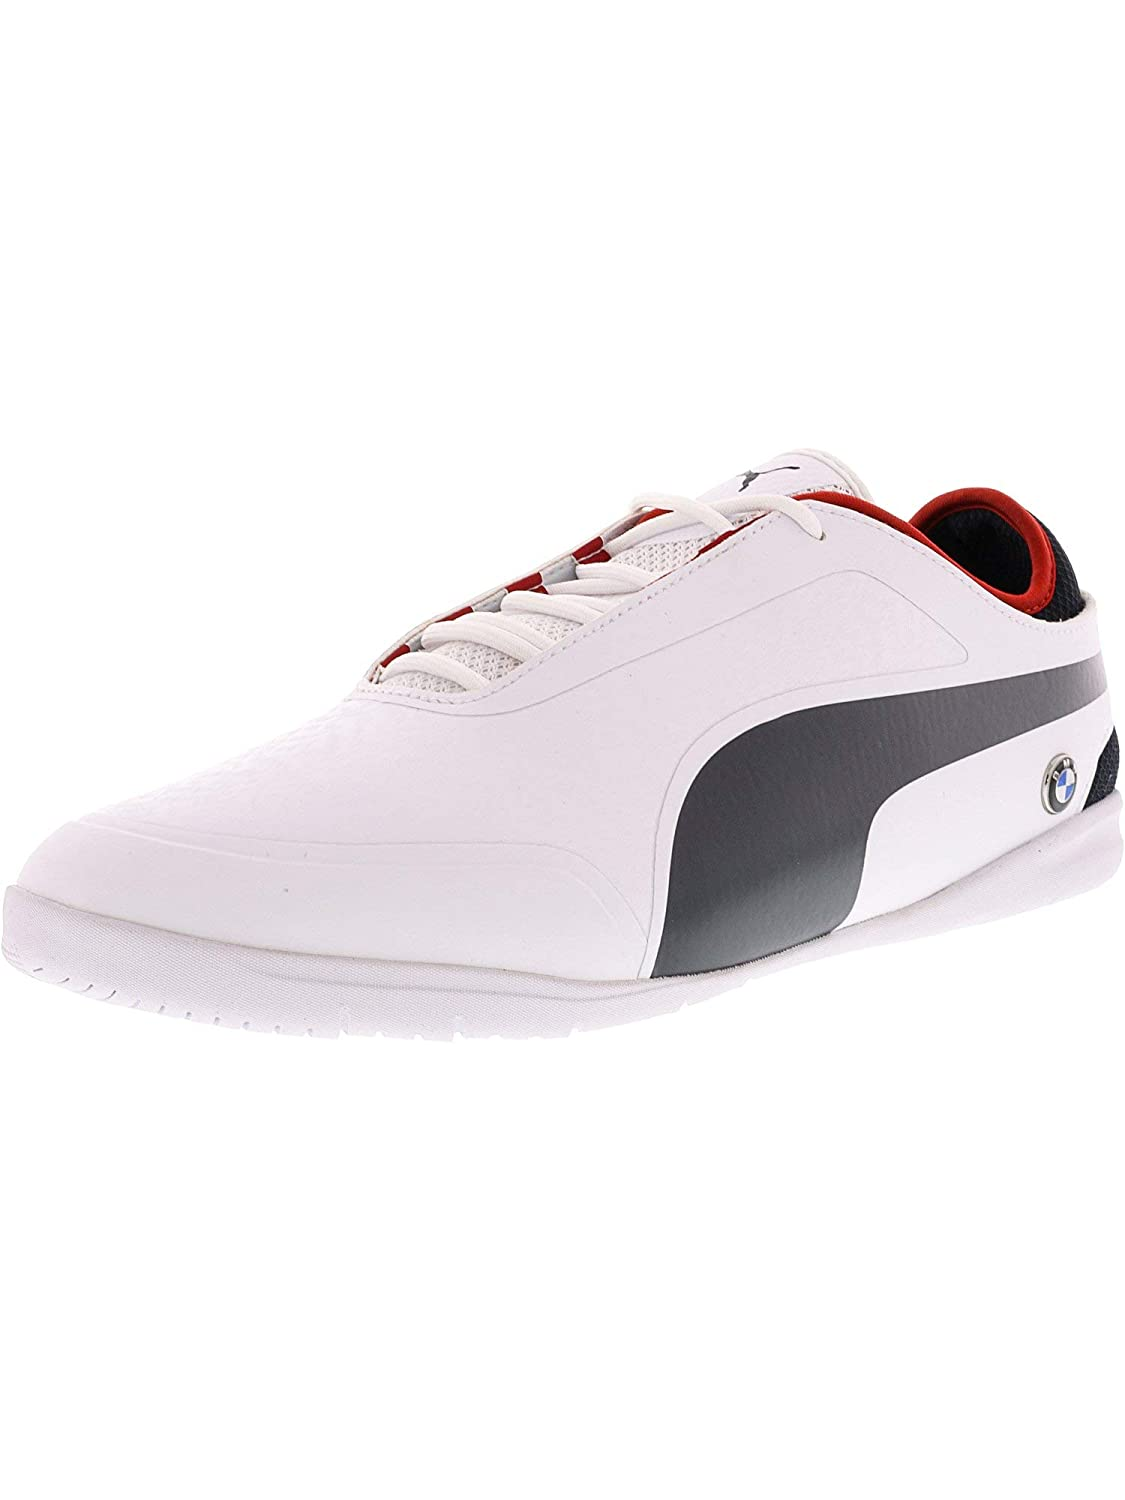 puma bmw high ankle sneakers